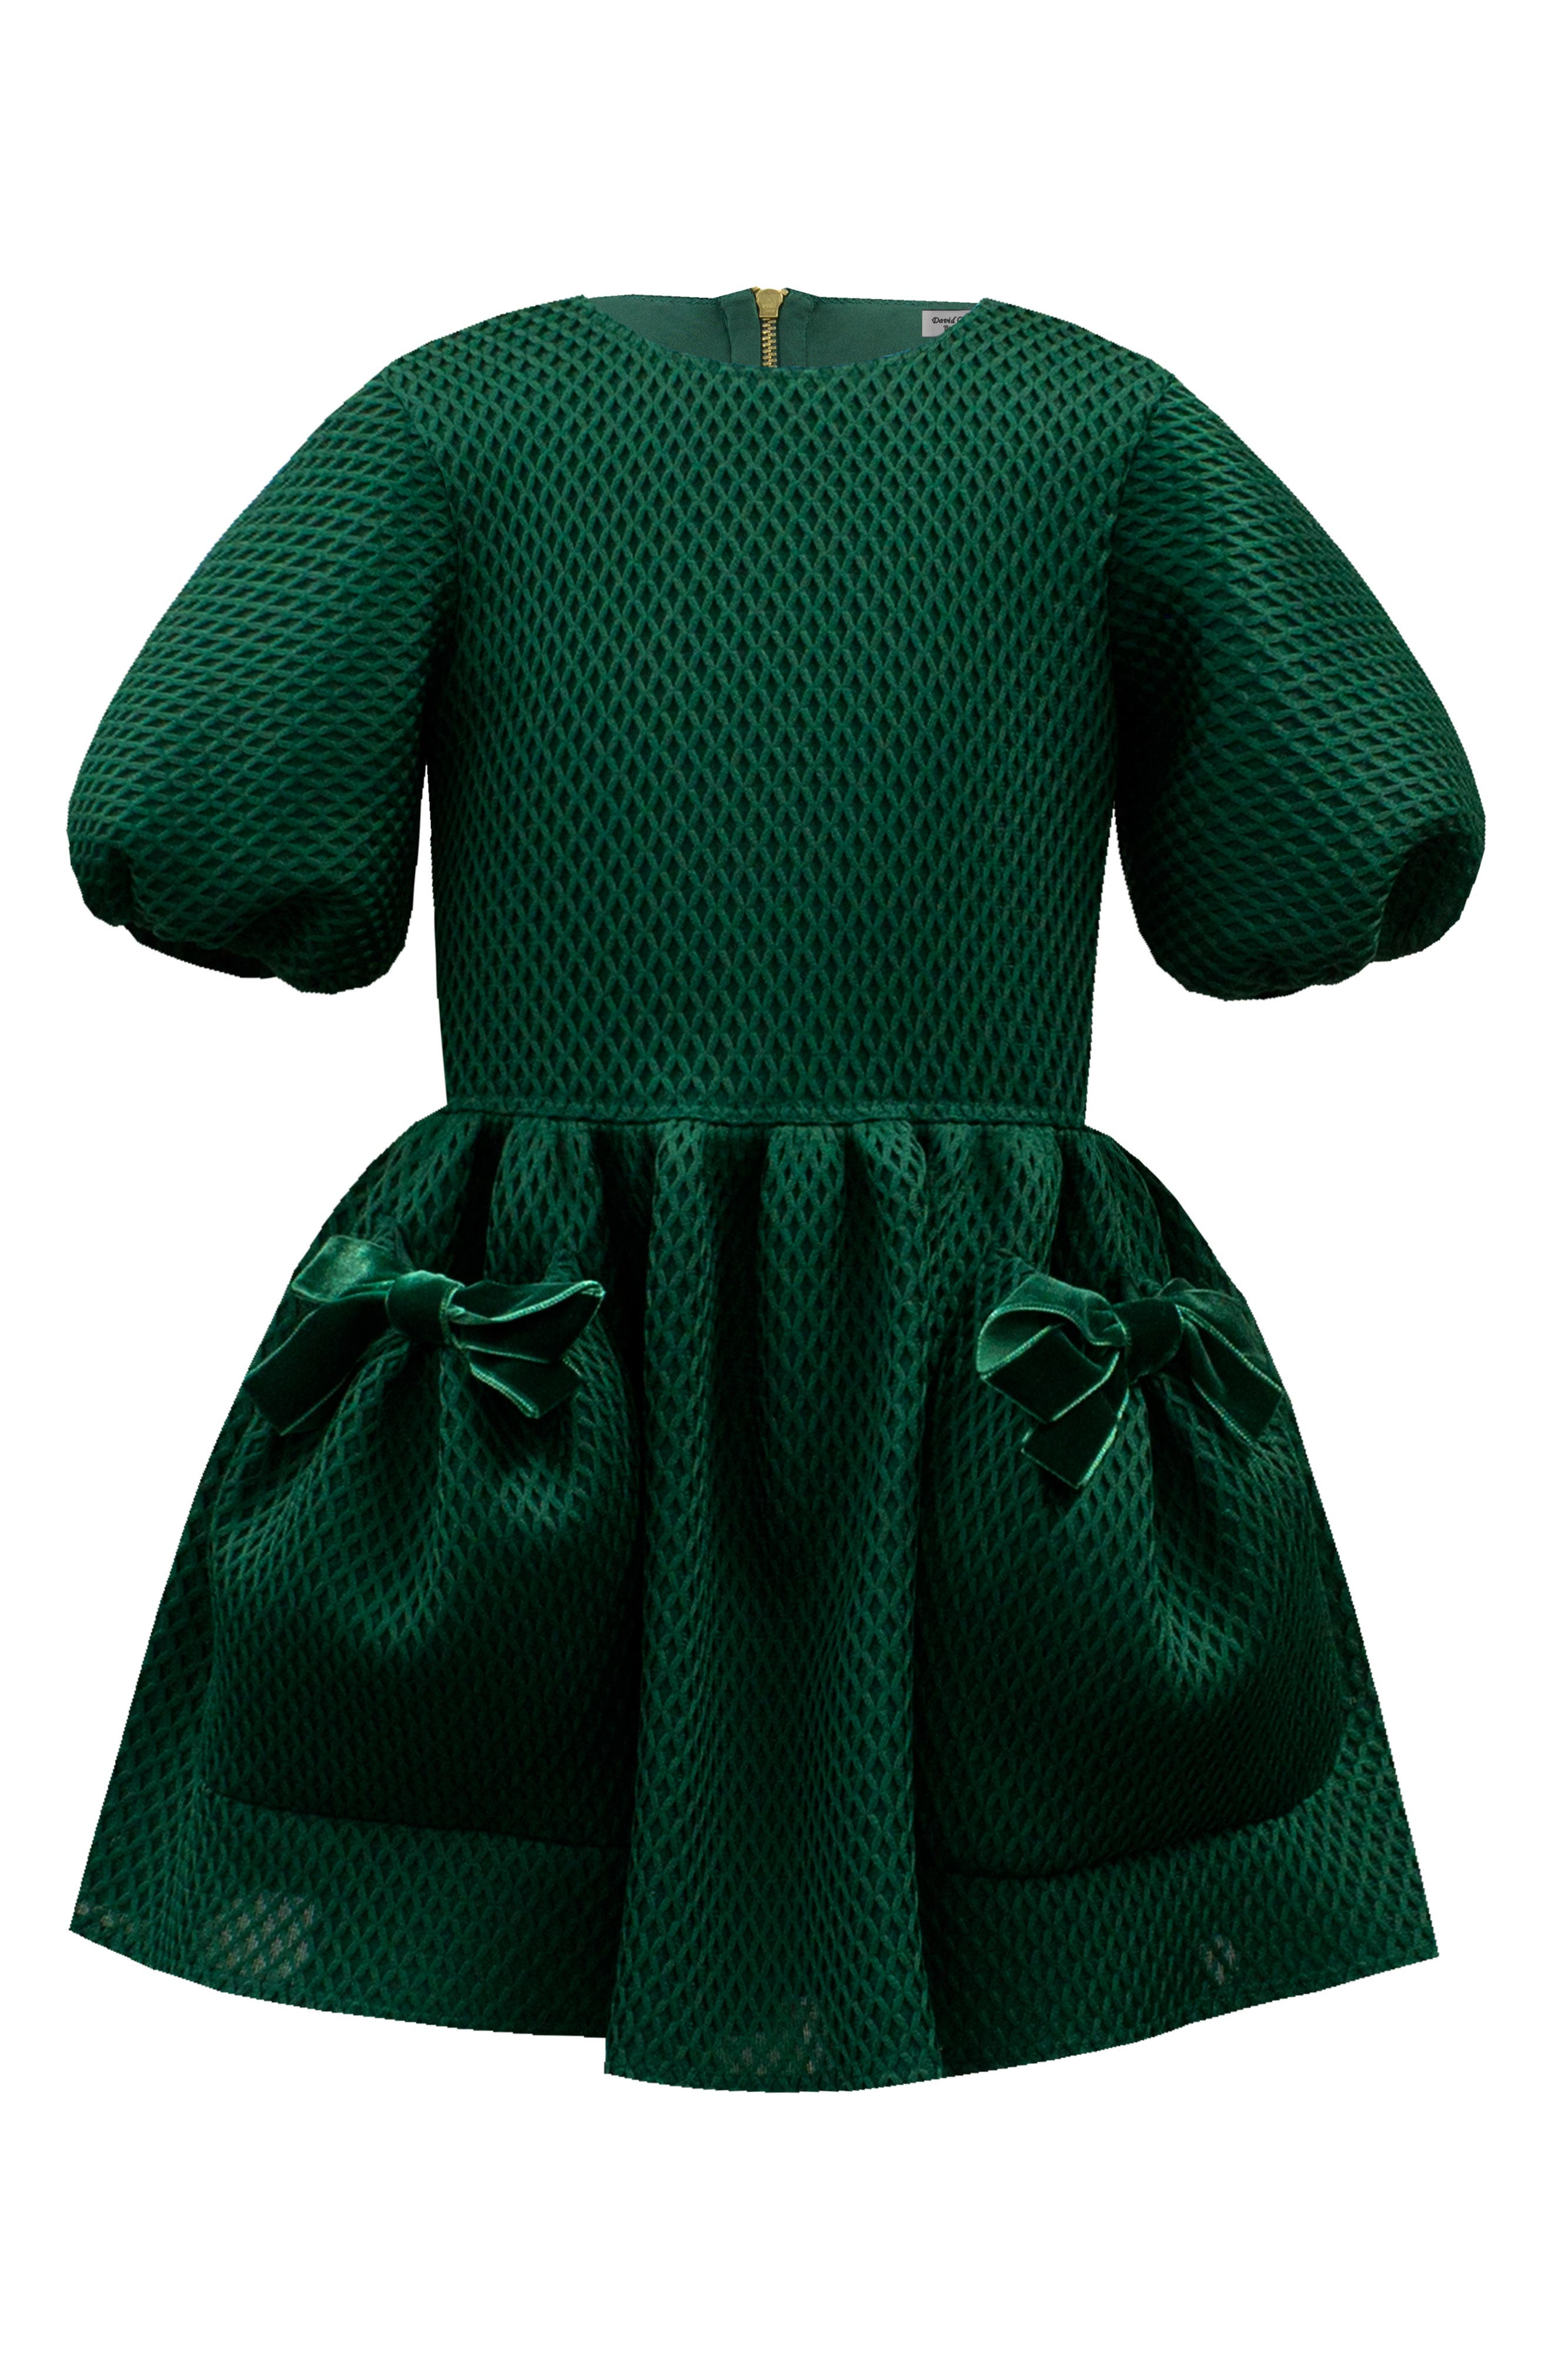 Vintage Style Children's Clothing: Girls, Boys, Baby, Toddler Girls David Charles Techno Balloon Sleeve Dress $177.00 AT vintagedancer.com